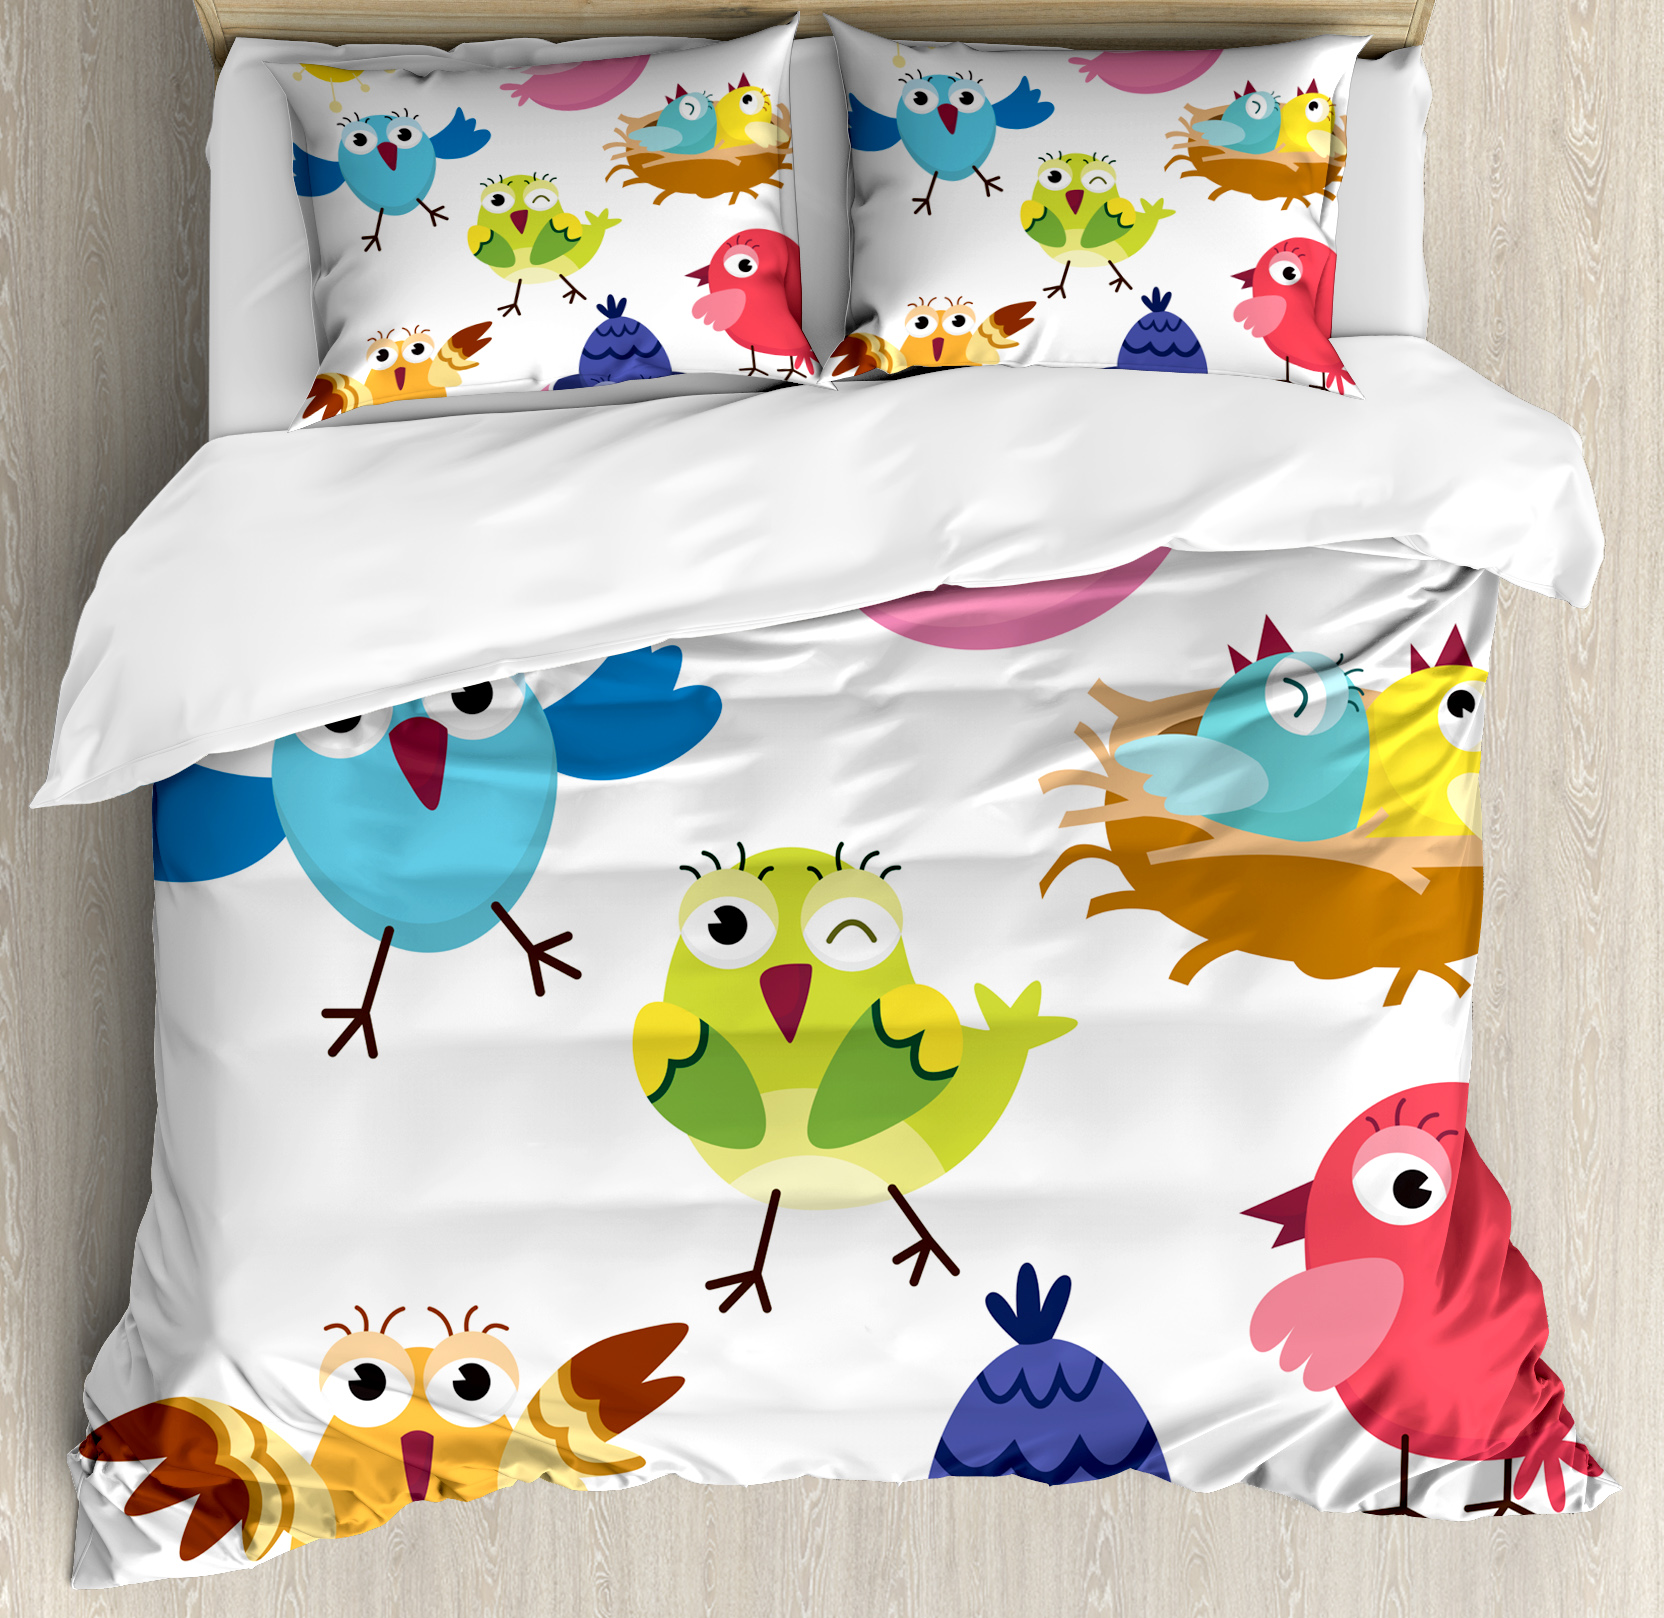 Funny Duvet Covers Bird Duvet Cover Set Funny Happy Cute Colorful Birds And Sun In Cartoon Style Toddler Kids Nursery Theme Decorative Bedding Set With Pillow Shams